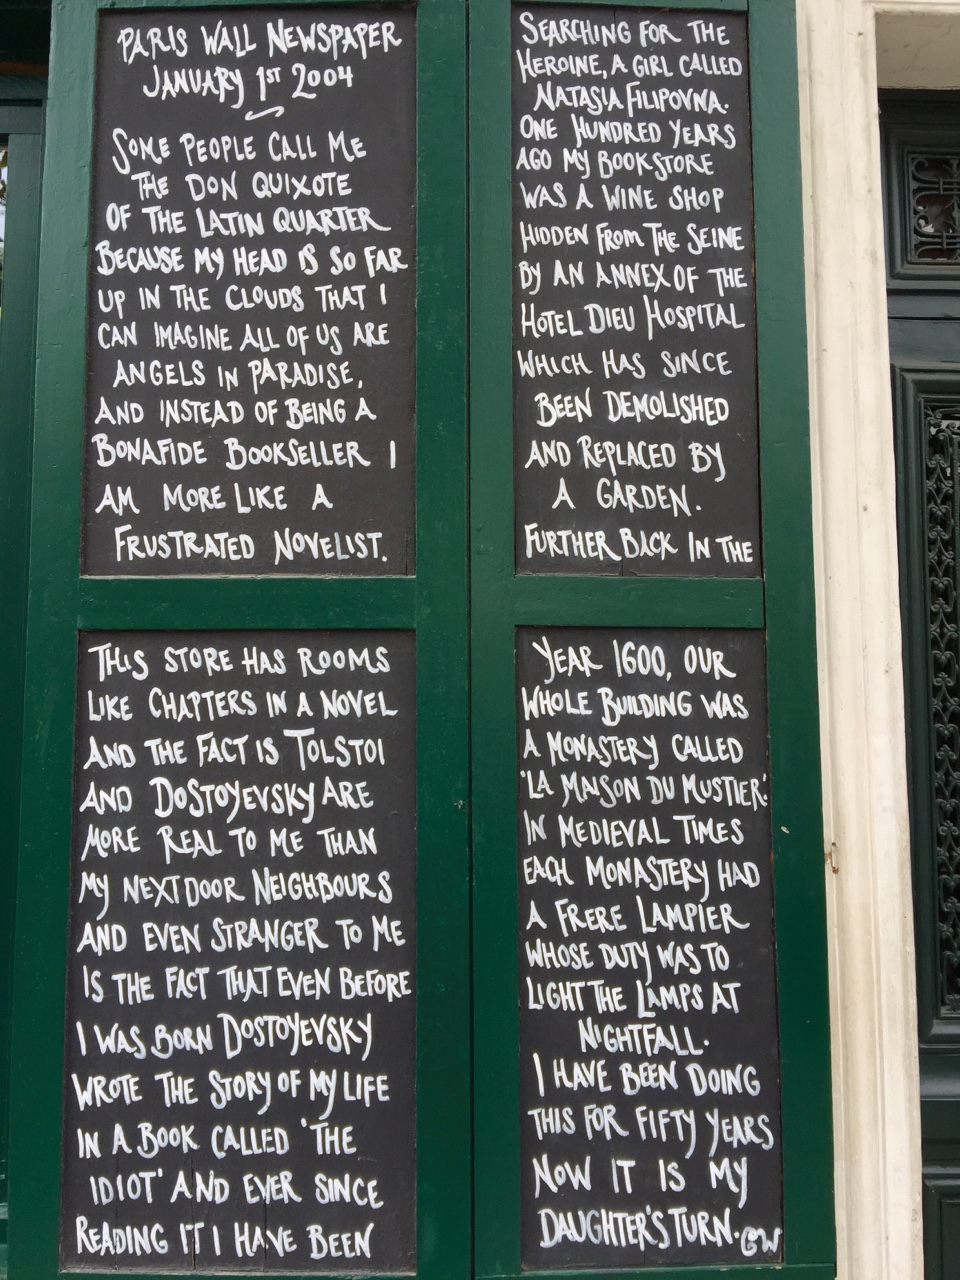 Located on the outer walls of the Shakespeare & Company Bookstore - Paris, France